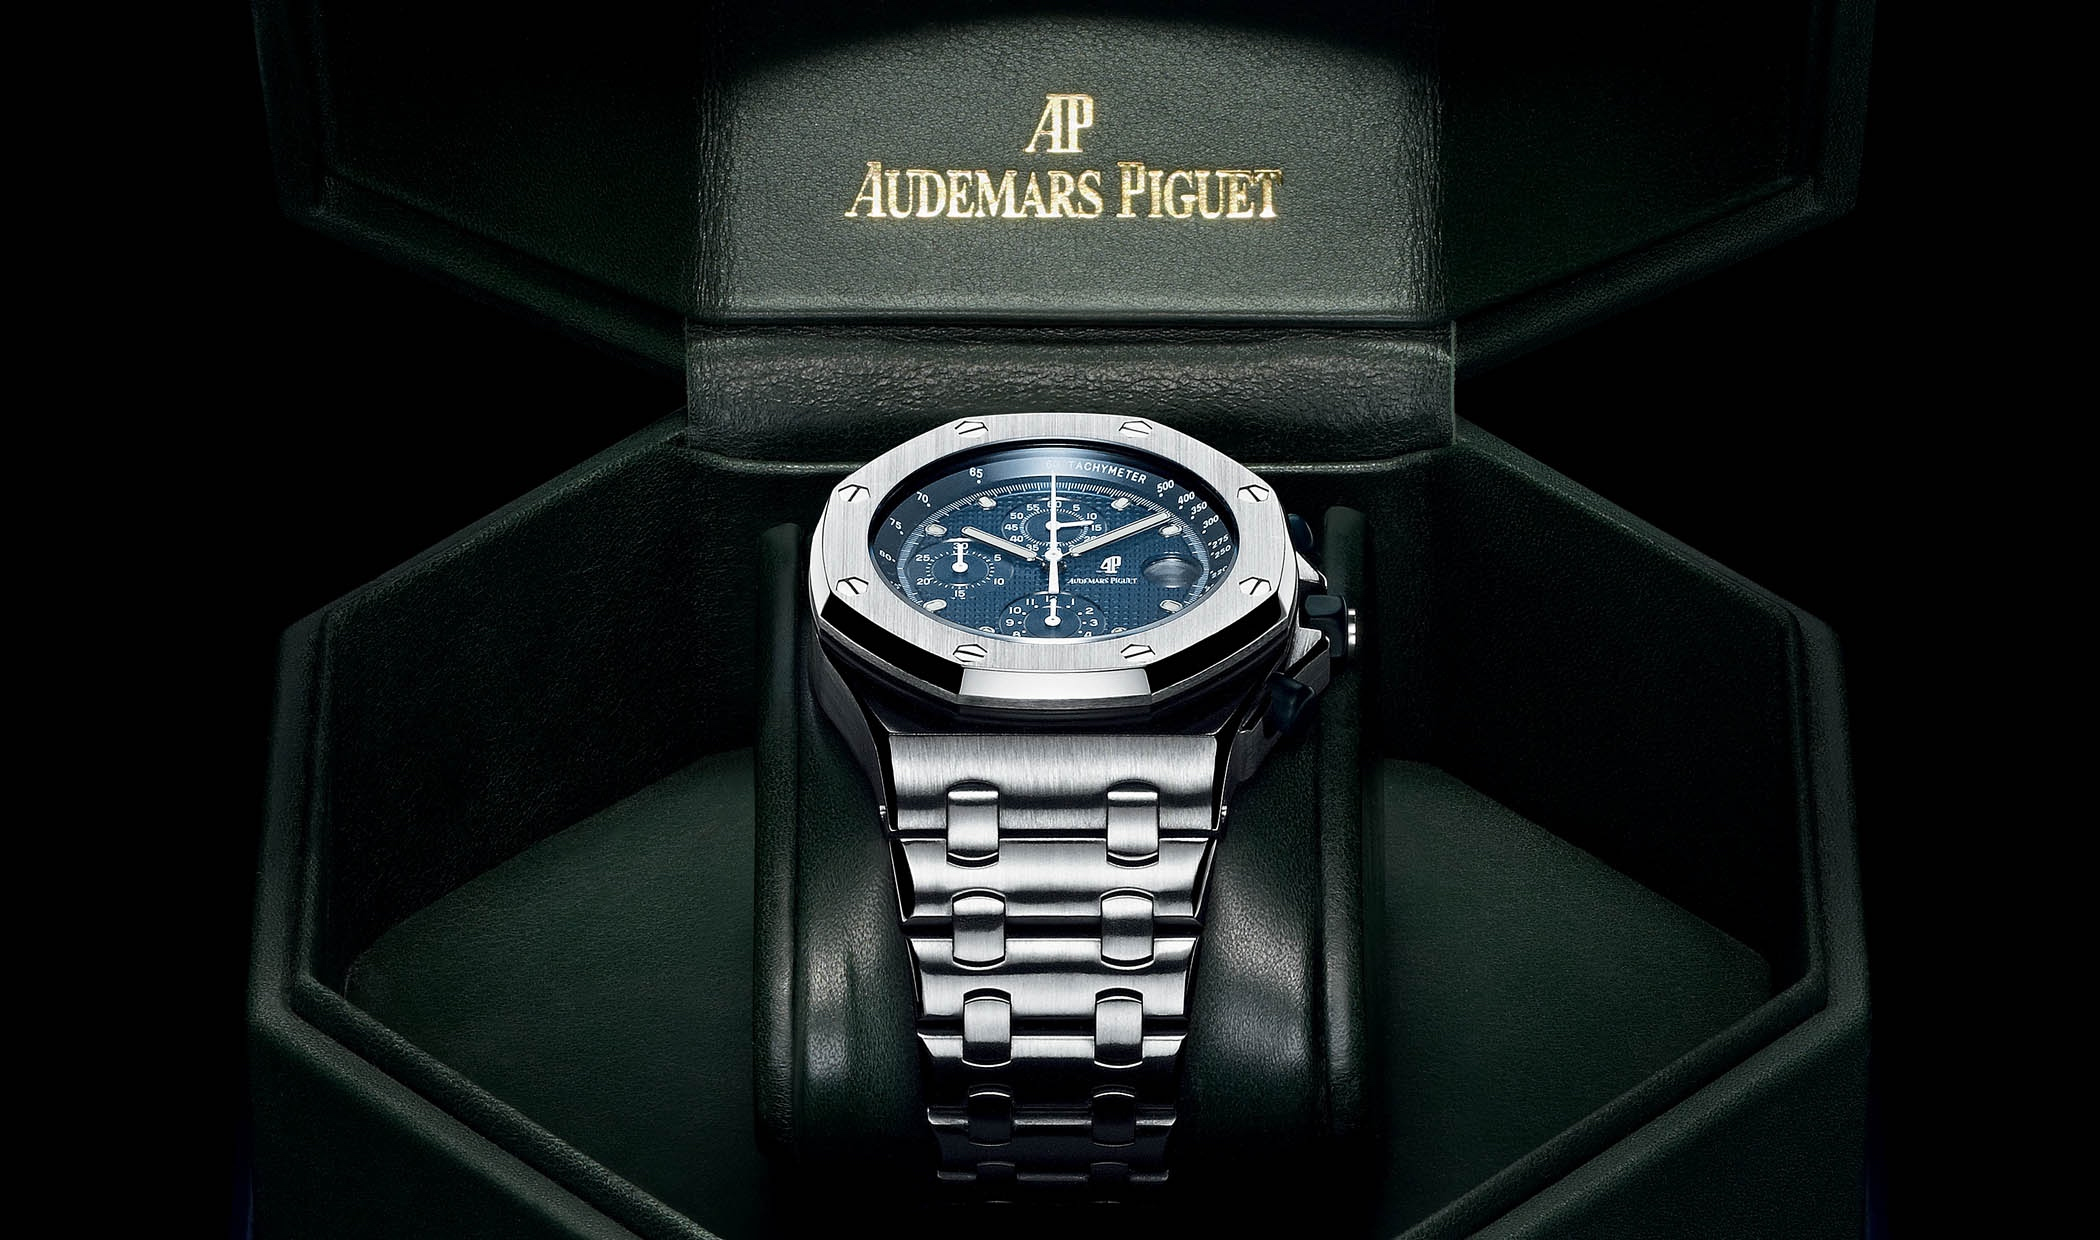 Audemars Piguet Royal Oak Offshore Ref. 25721ST